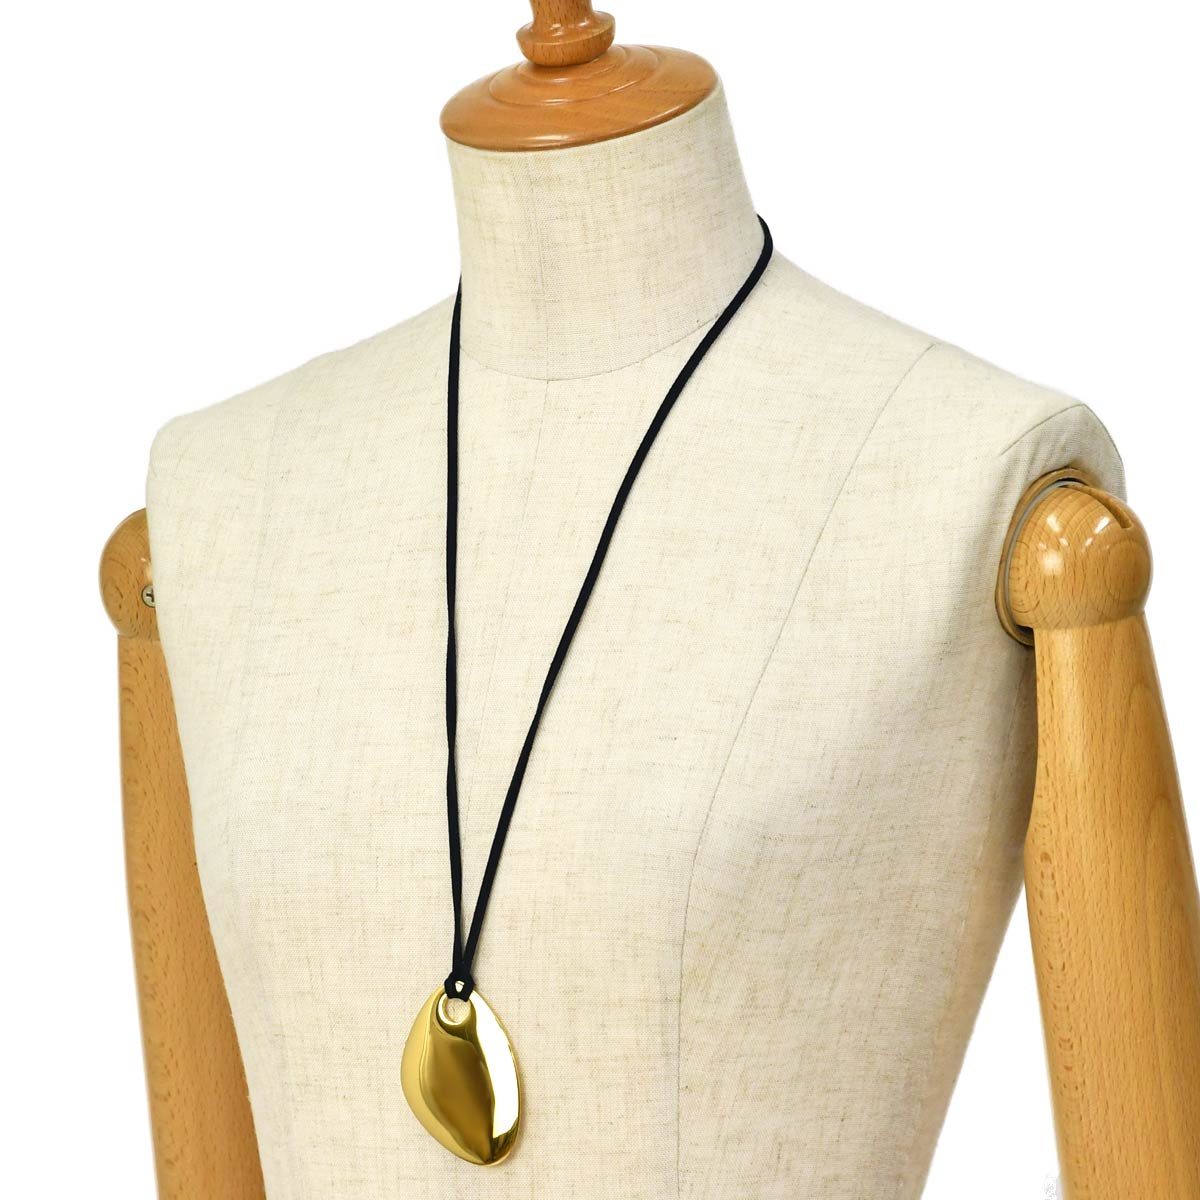 SOKO【ソコ】ネックレス SABI ORGANIC DROP PENDANT NECKLACE JN173043 ゴールド